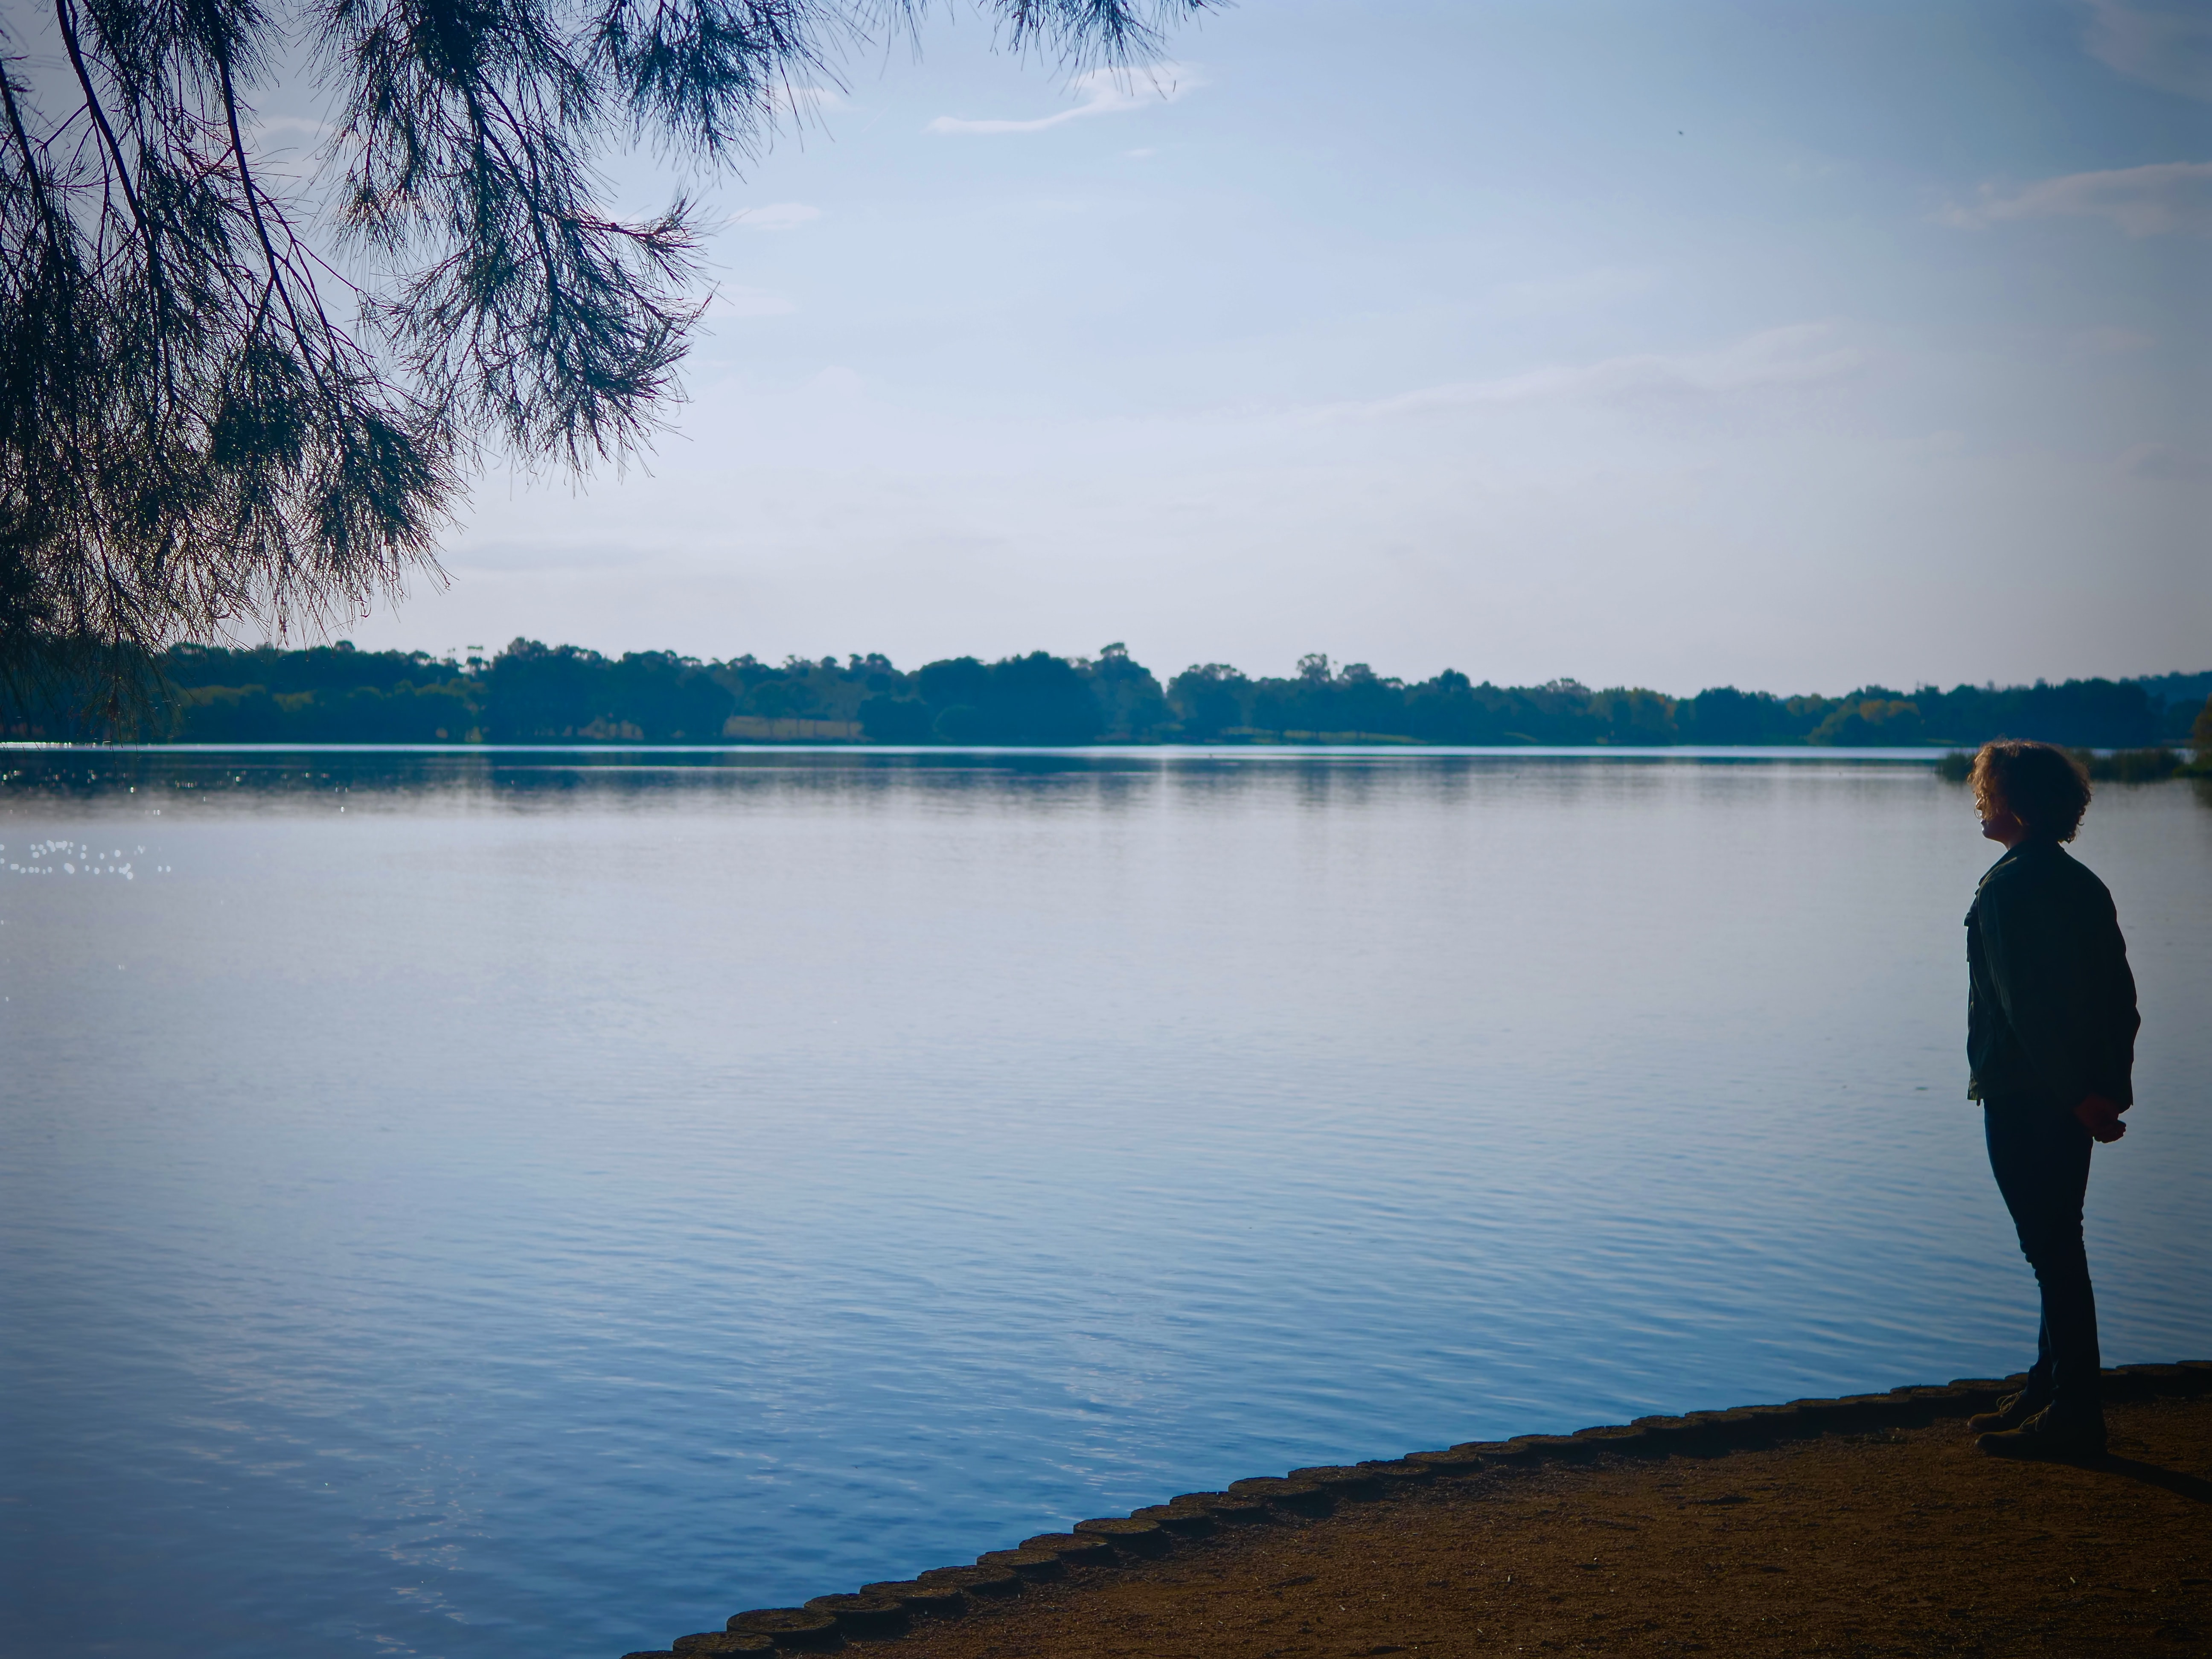 woman standing alone facing body of water